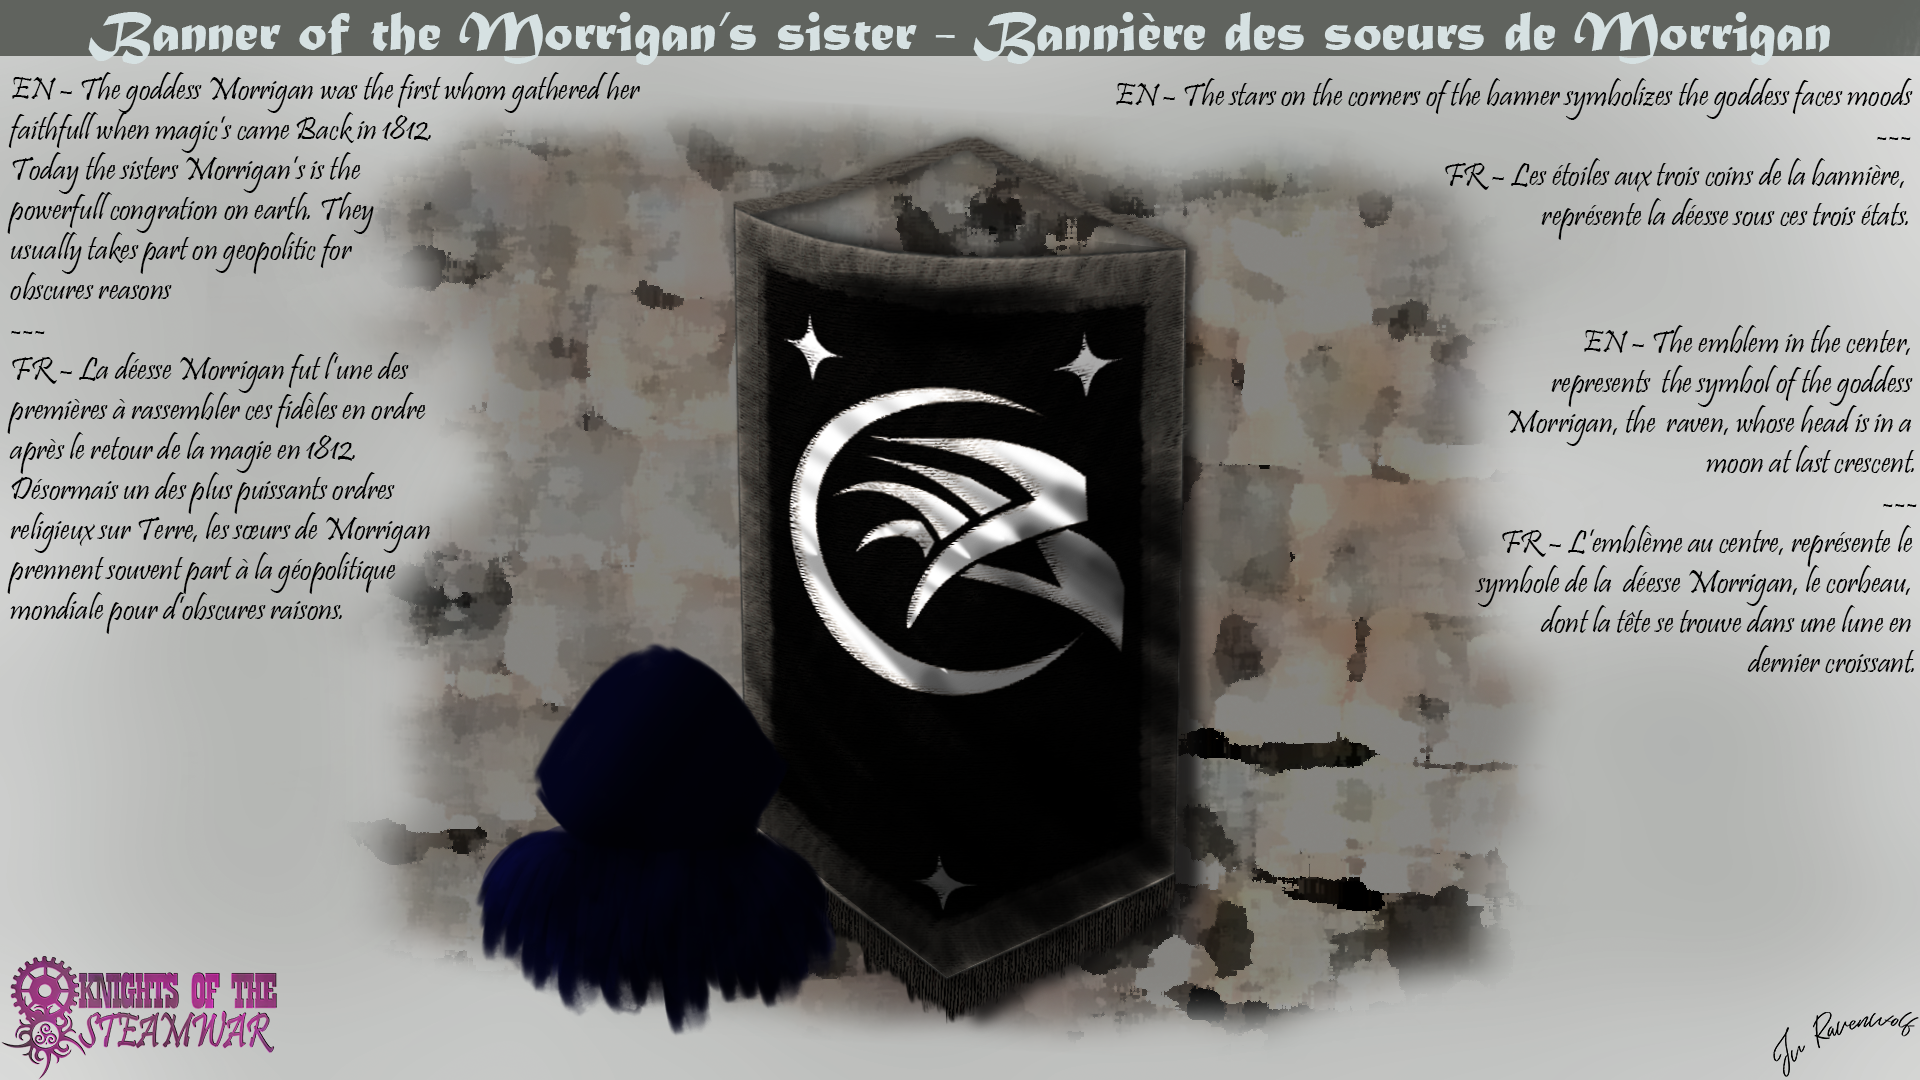 Banner of the Morrigan's sisters par Ravenwolf